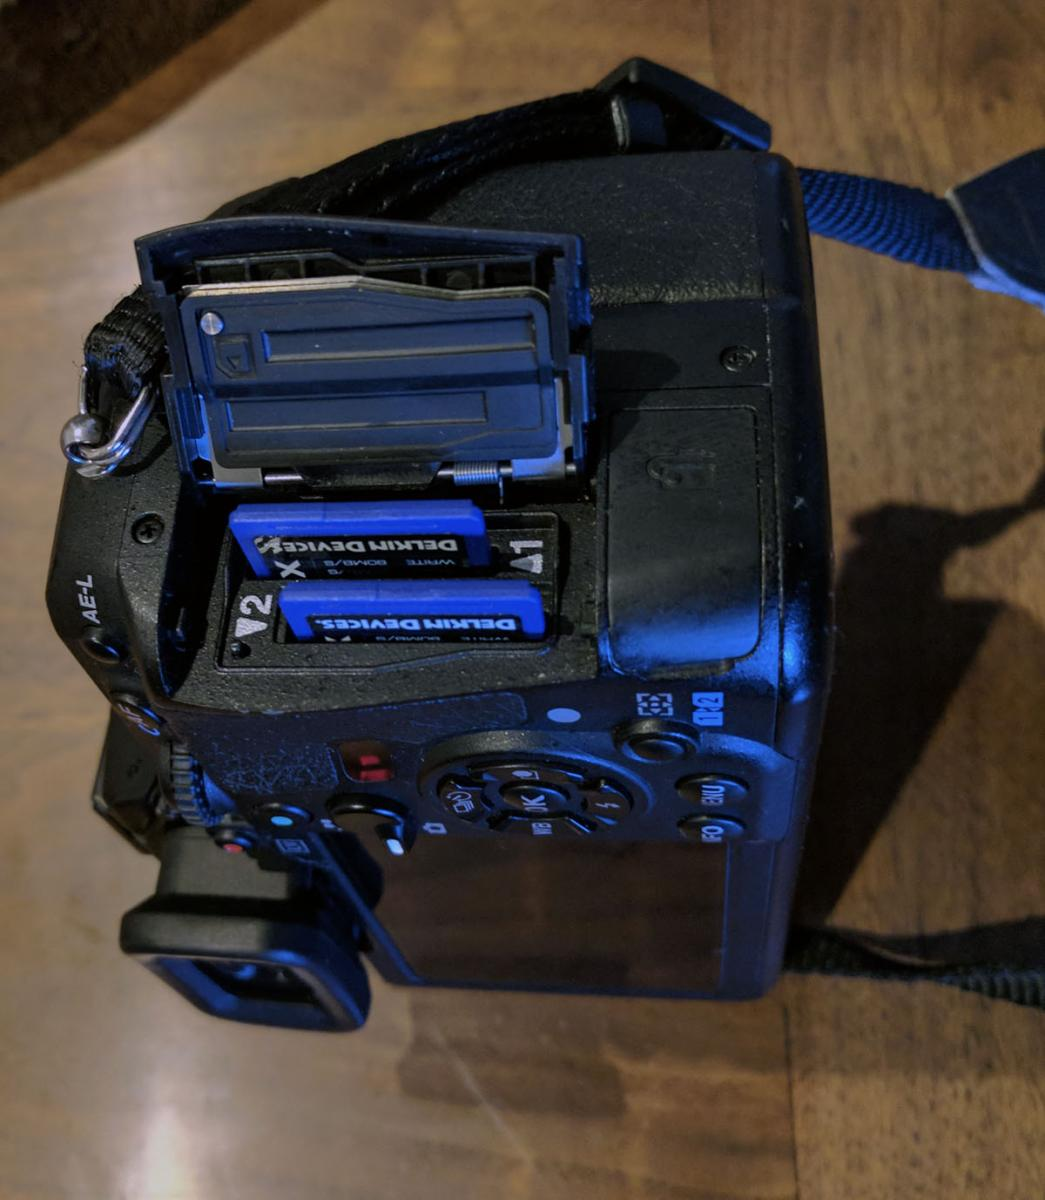 Photo of Pentax K3ii w/ 50mm 1.8 lens, SD Cards, Portable Studio, And Reflector Set